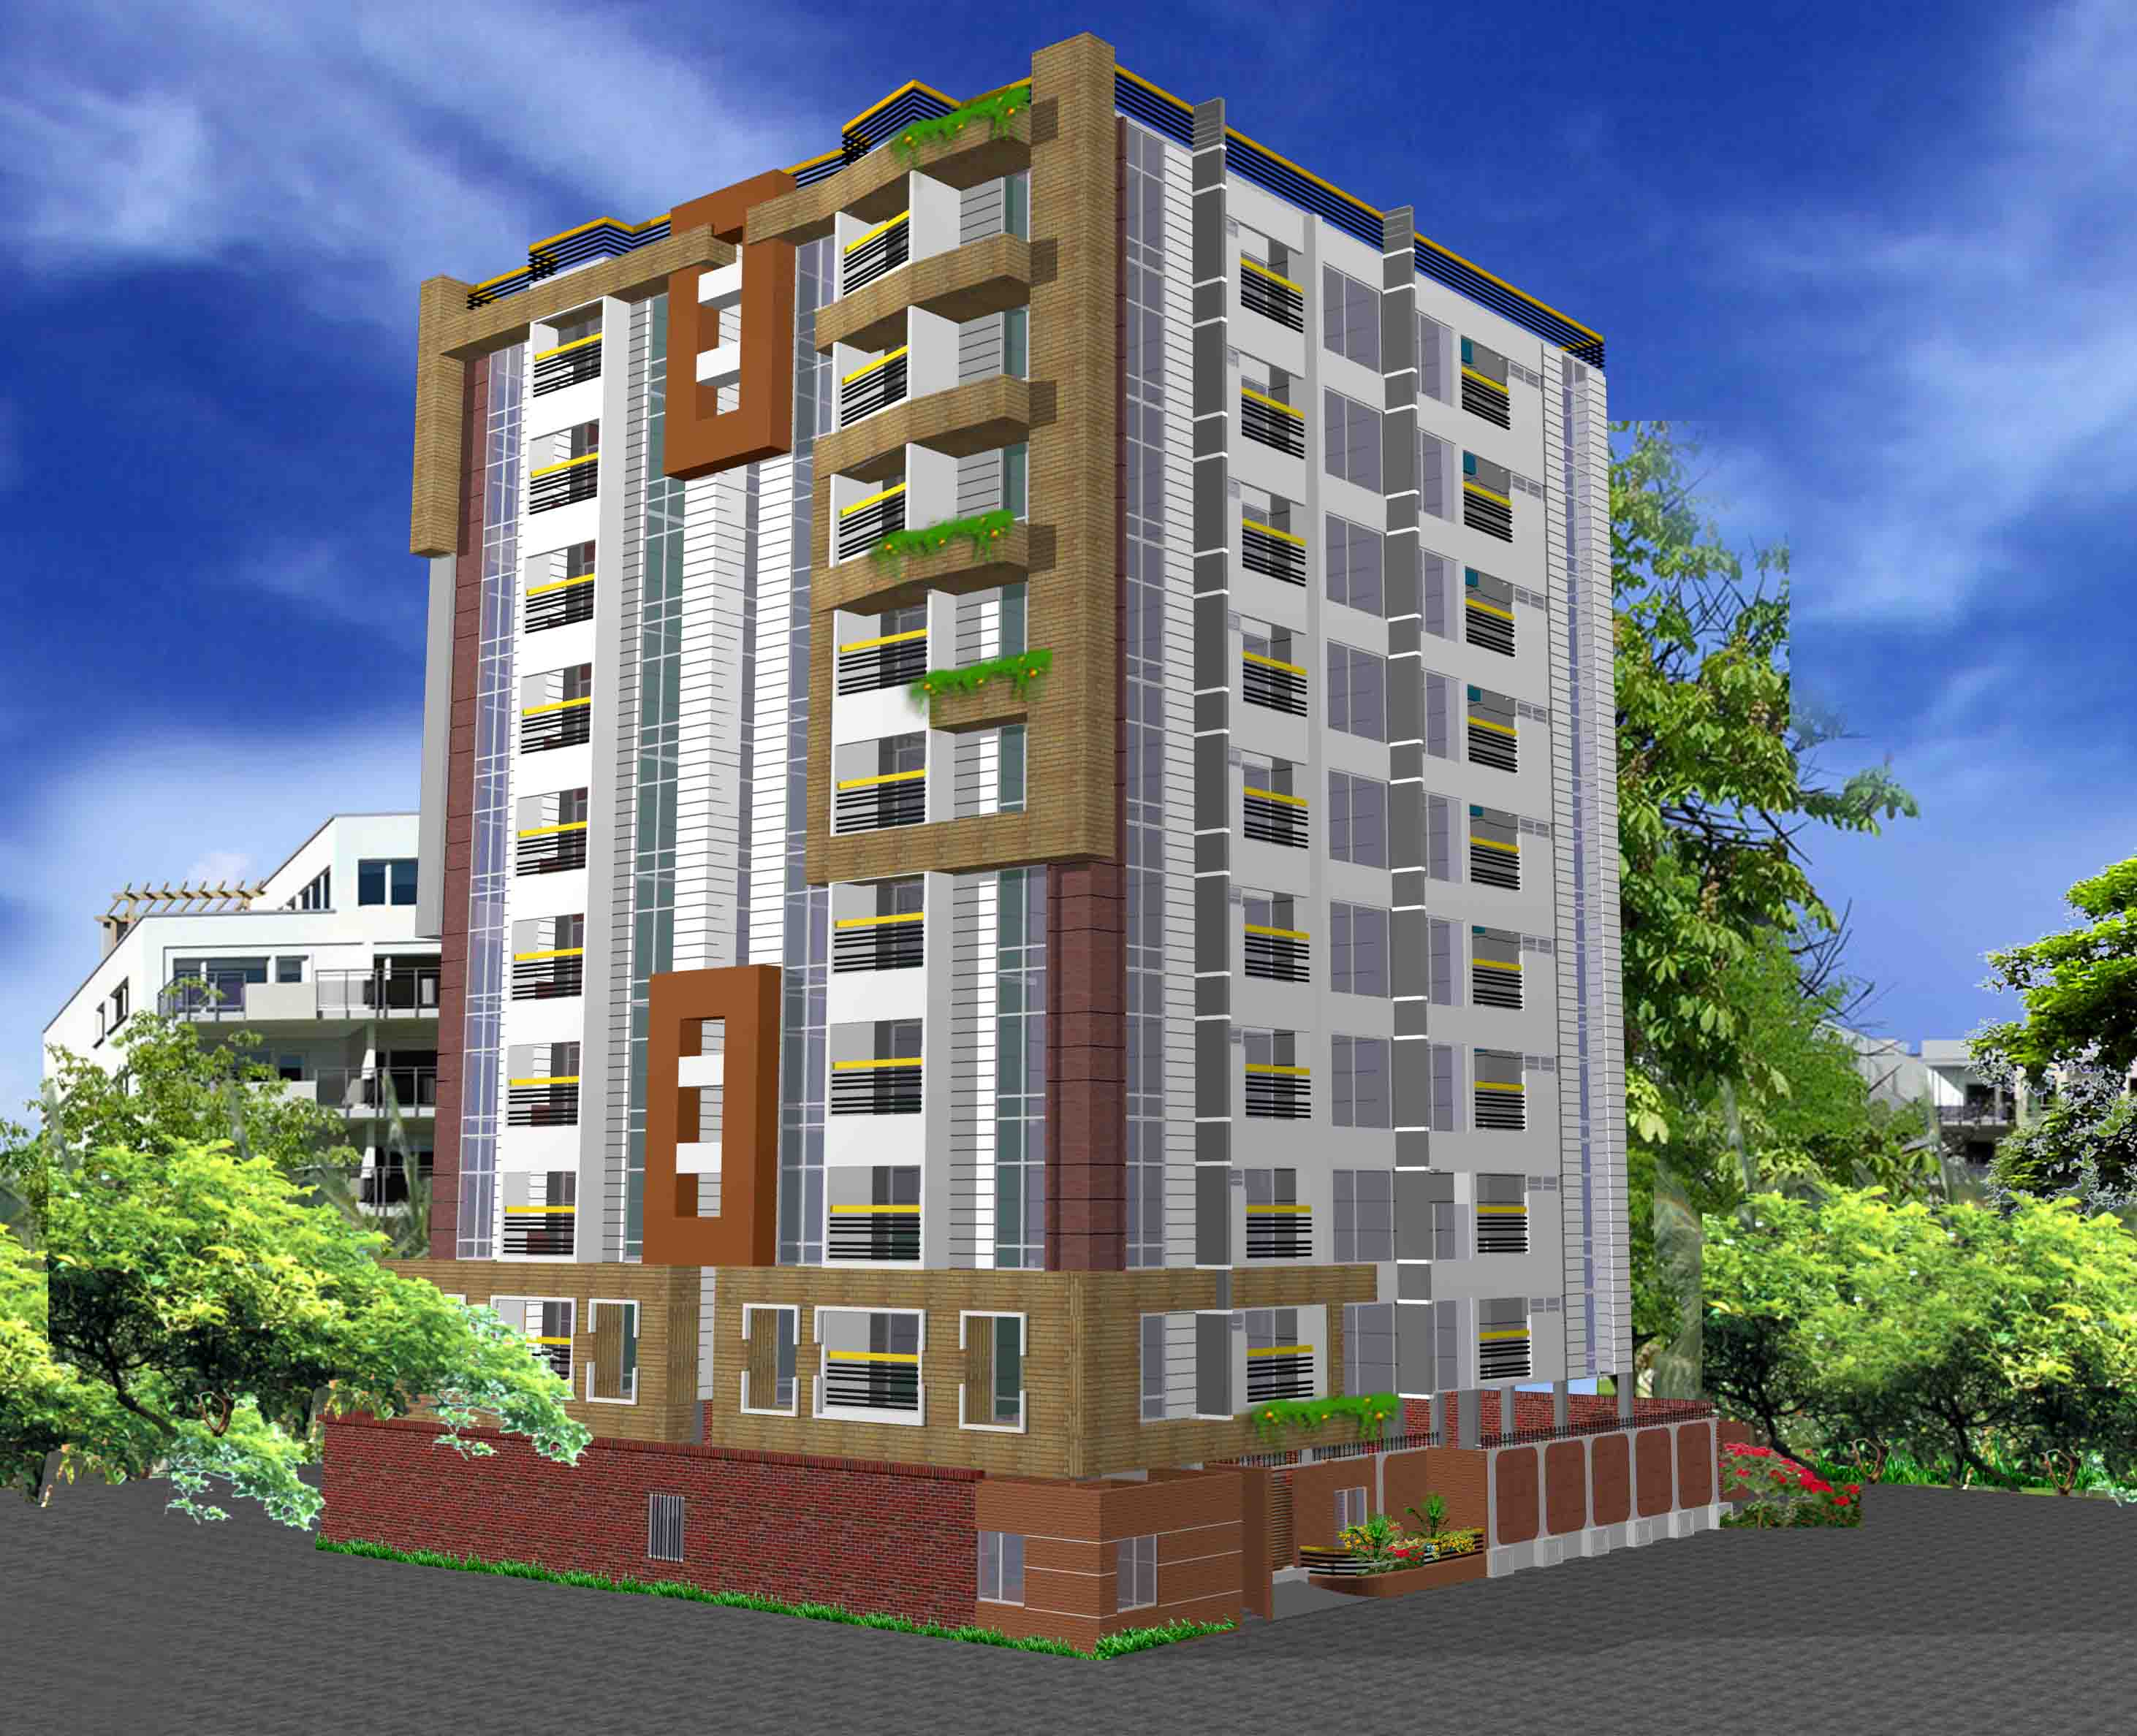 Lodha Codename Super deal offers luxurious residential apartment